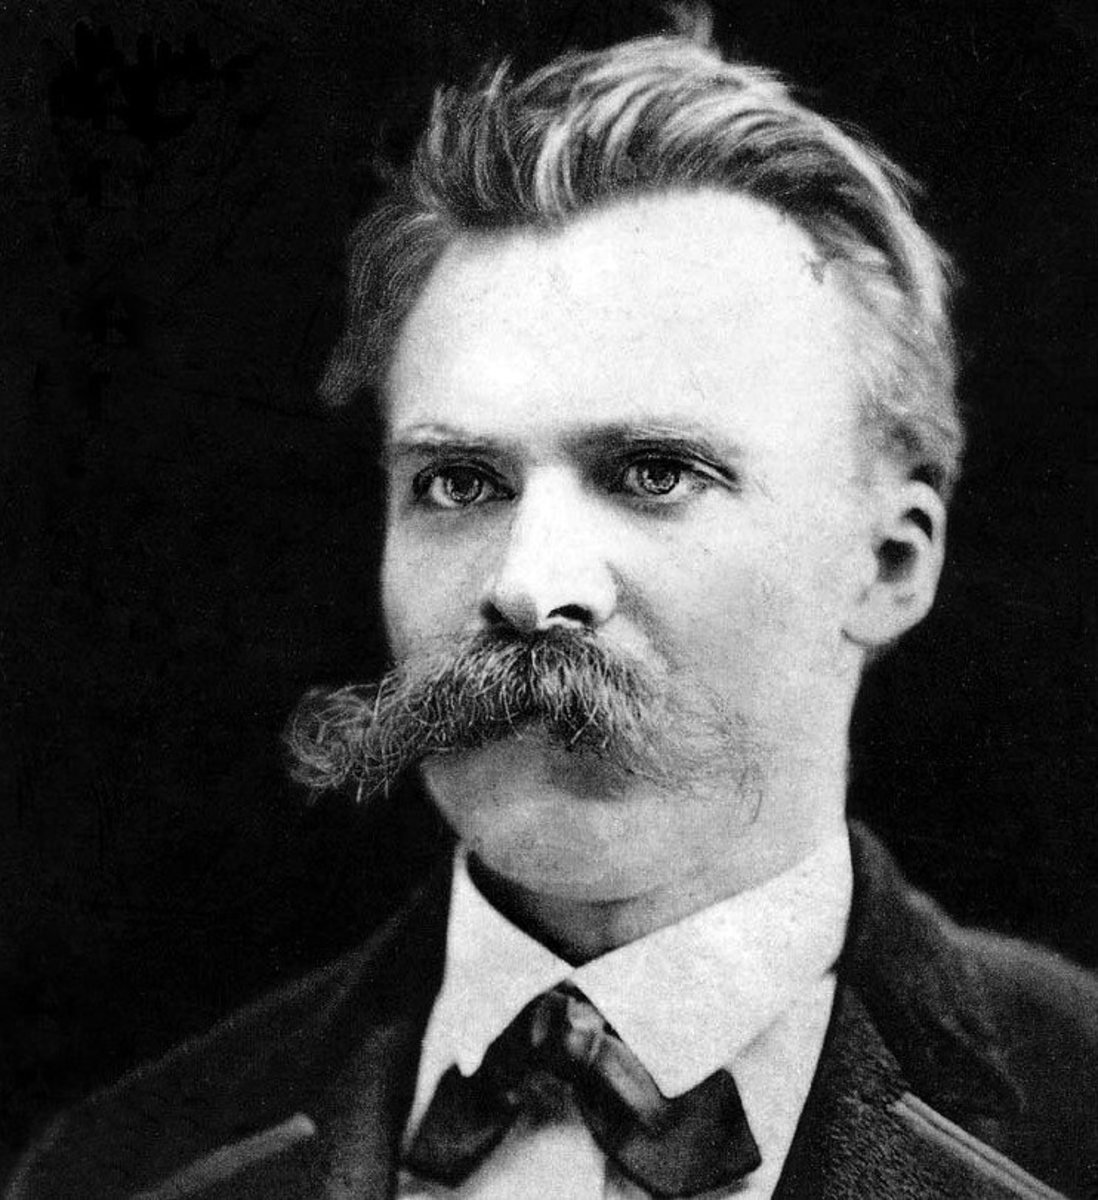 Famous Philosophers: What Did Friedrich Nietzsche Believe?